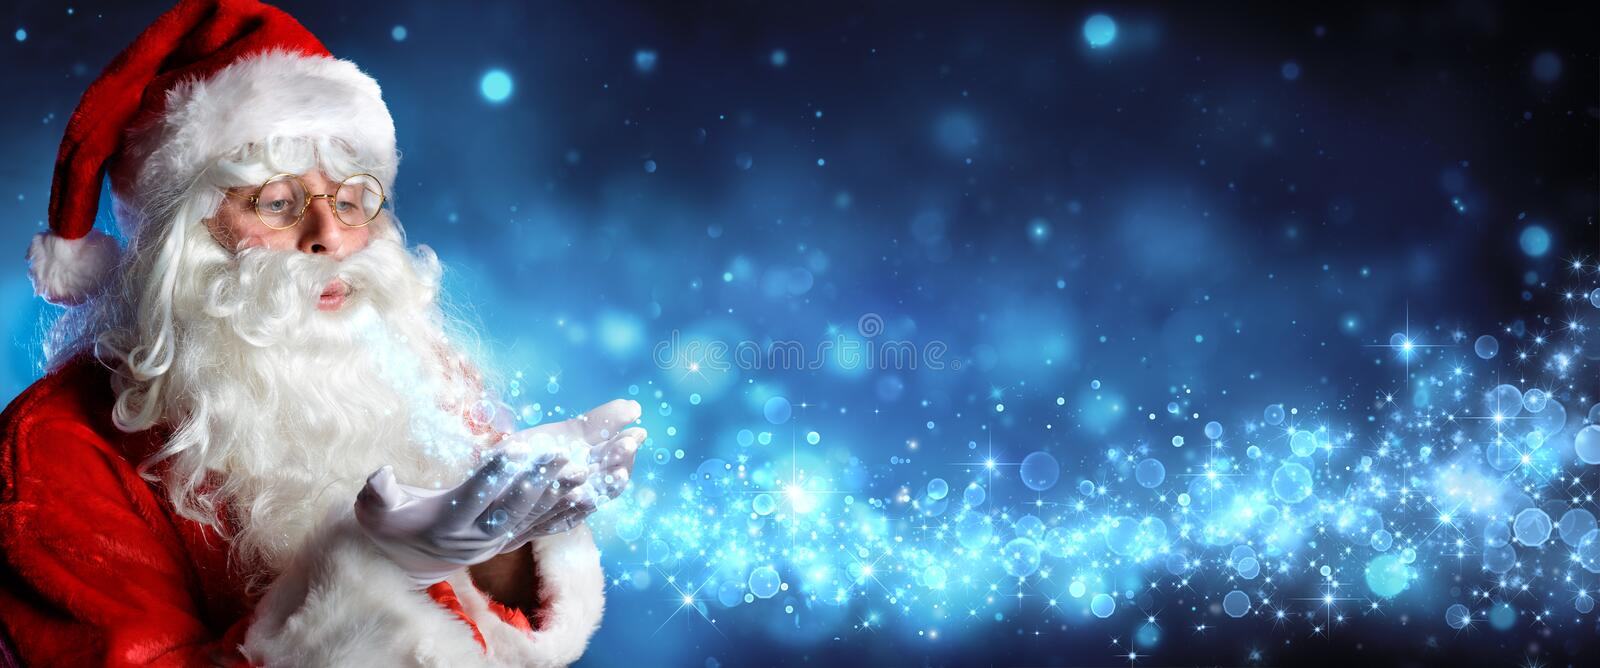 Santa Claus Blowing Magic Christmas Stars immagini stock